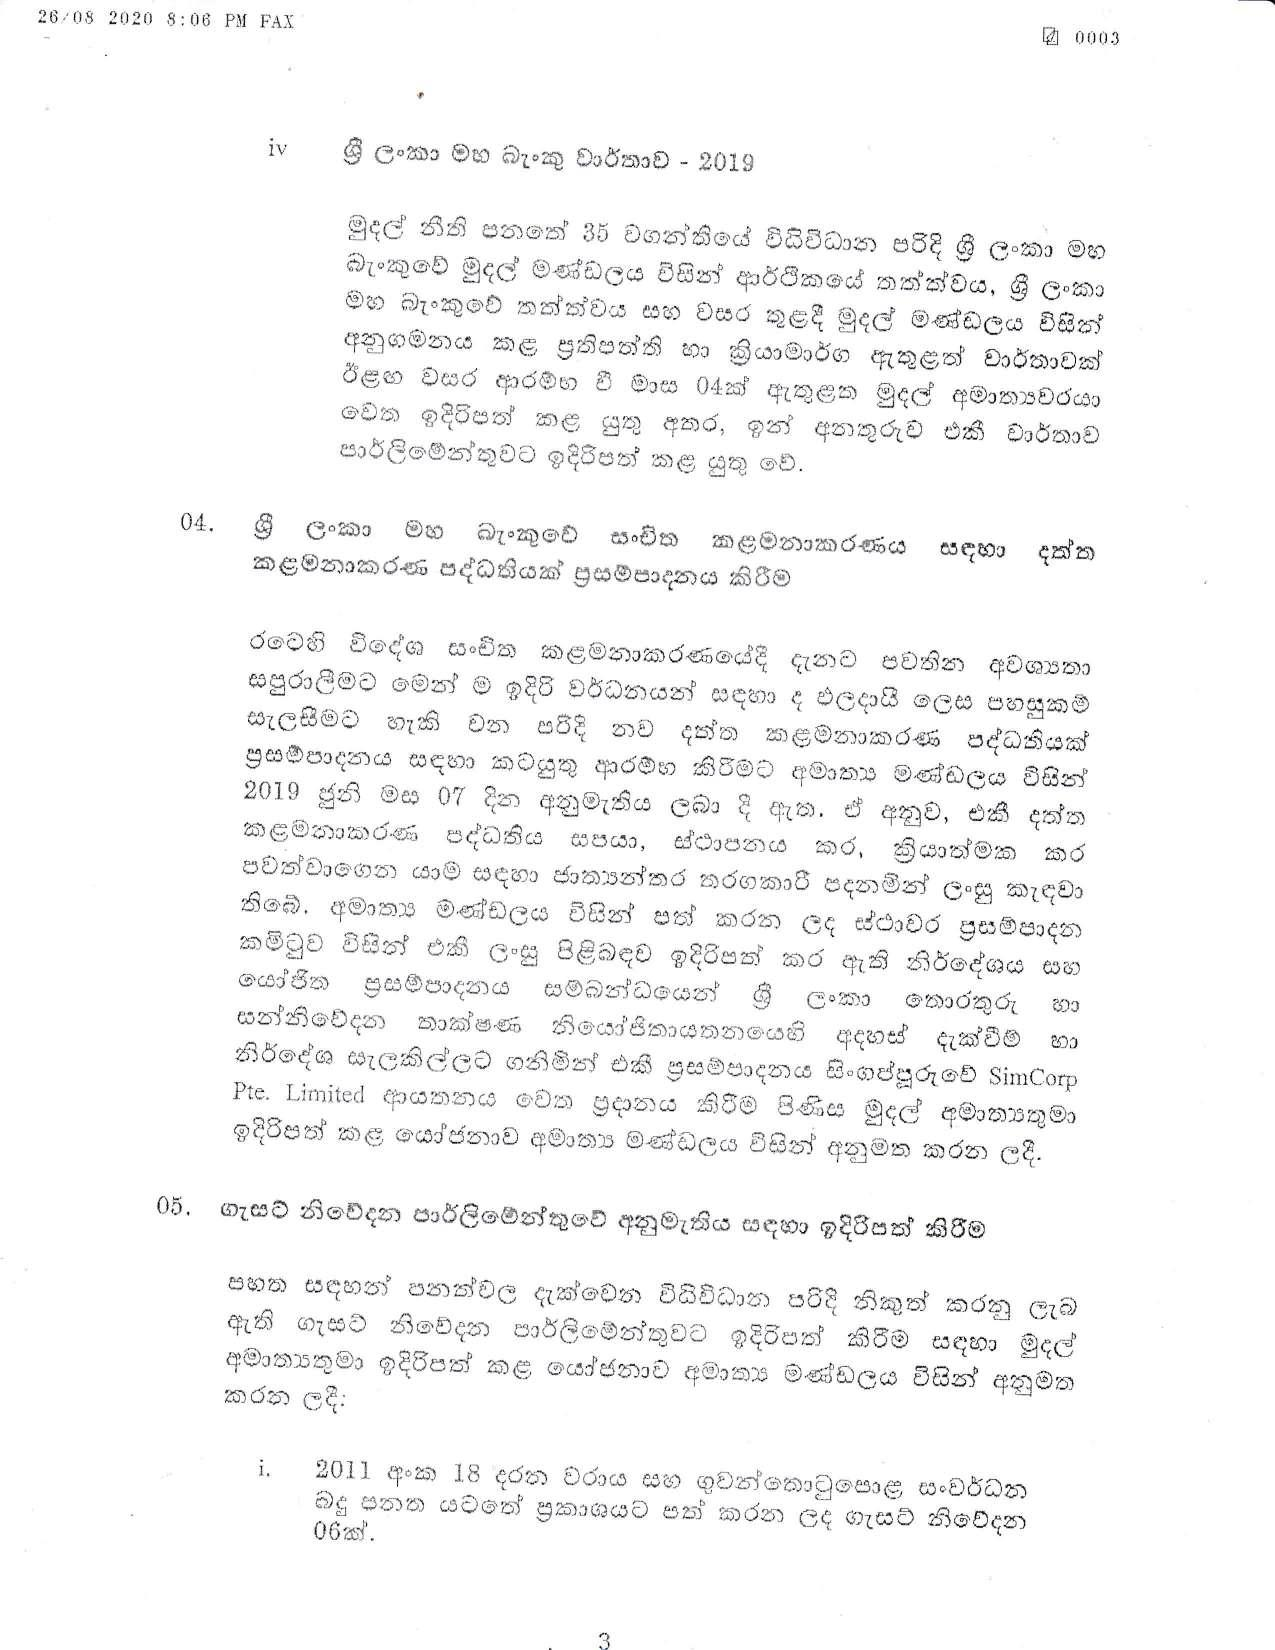 cabinet decision Sinhala 2020 08 26 compressed page 003